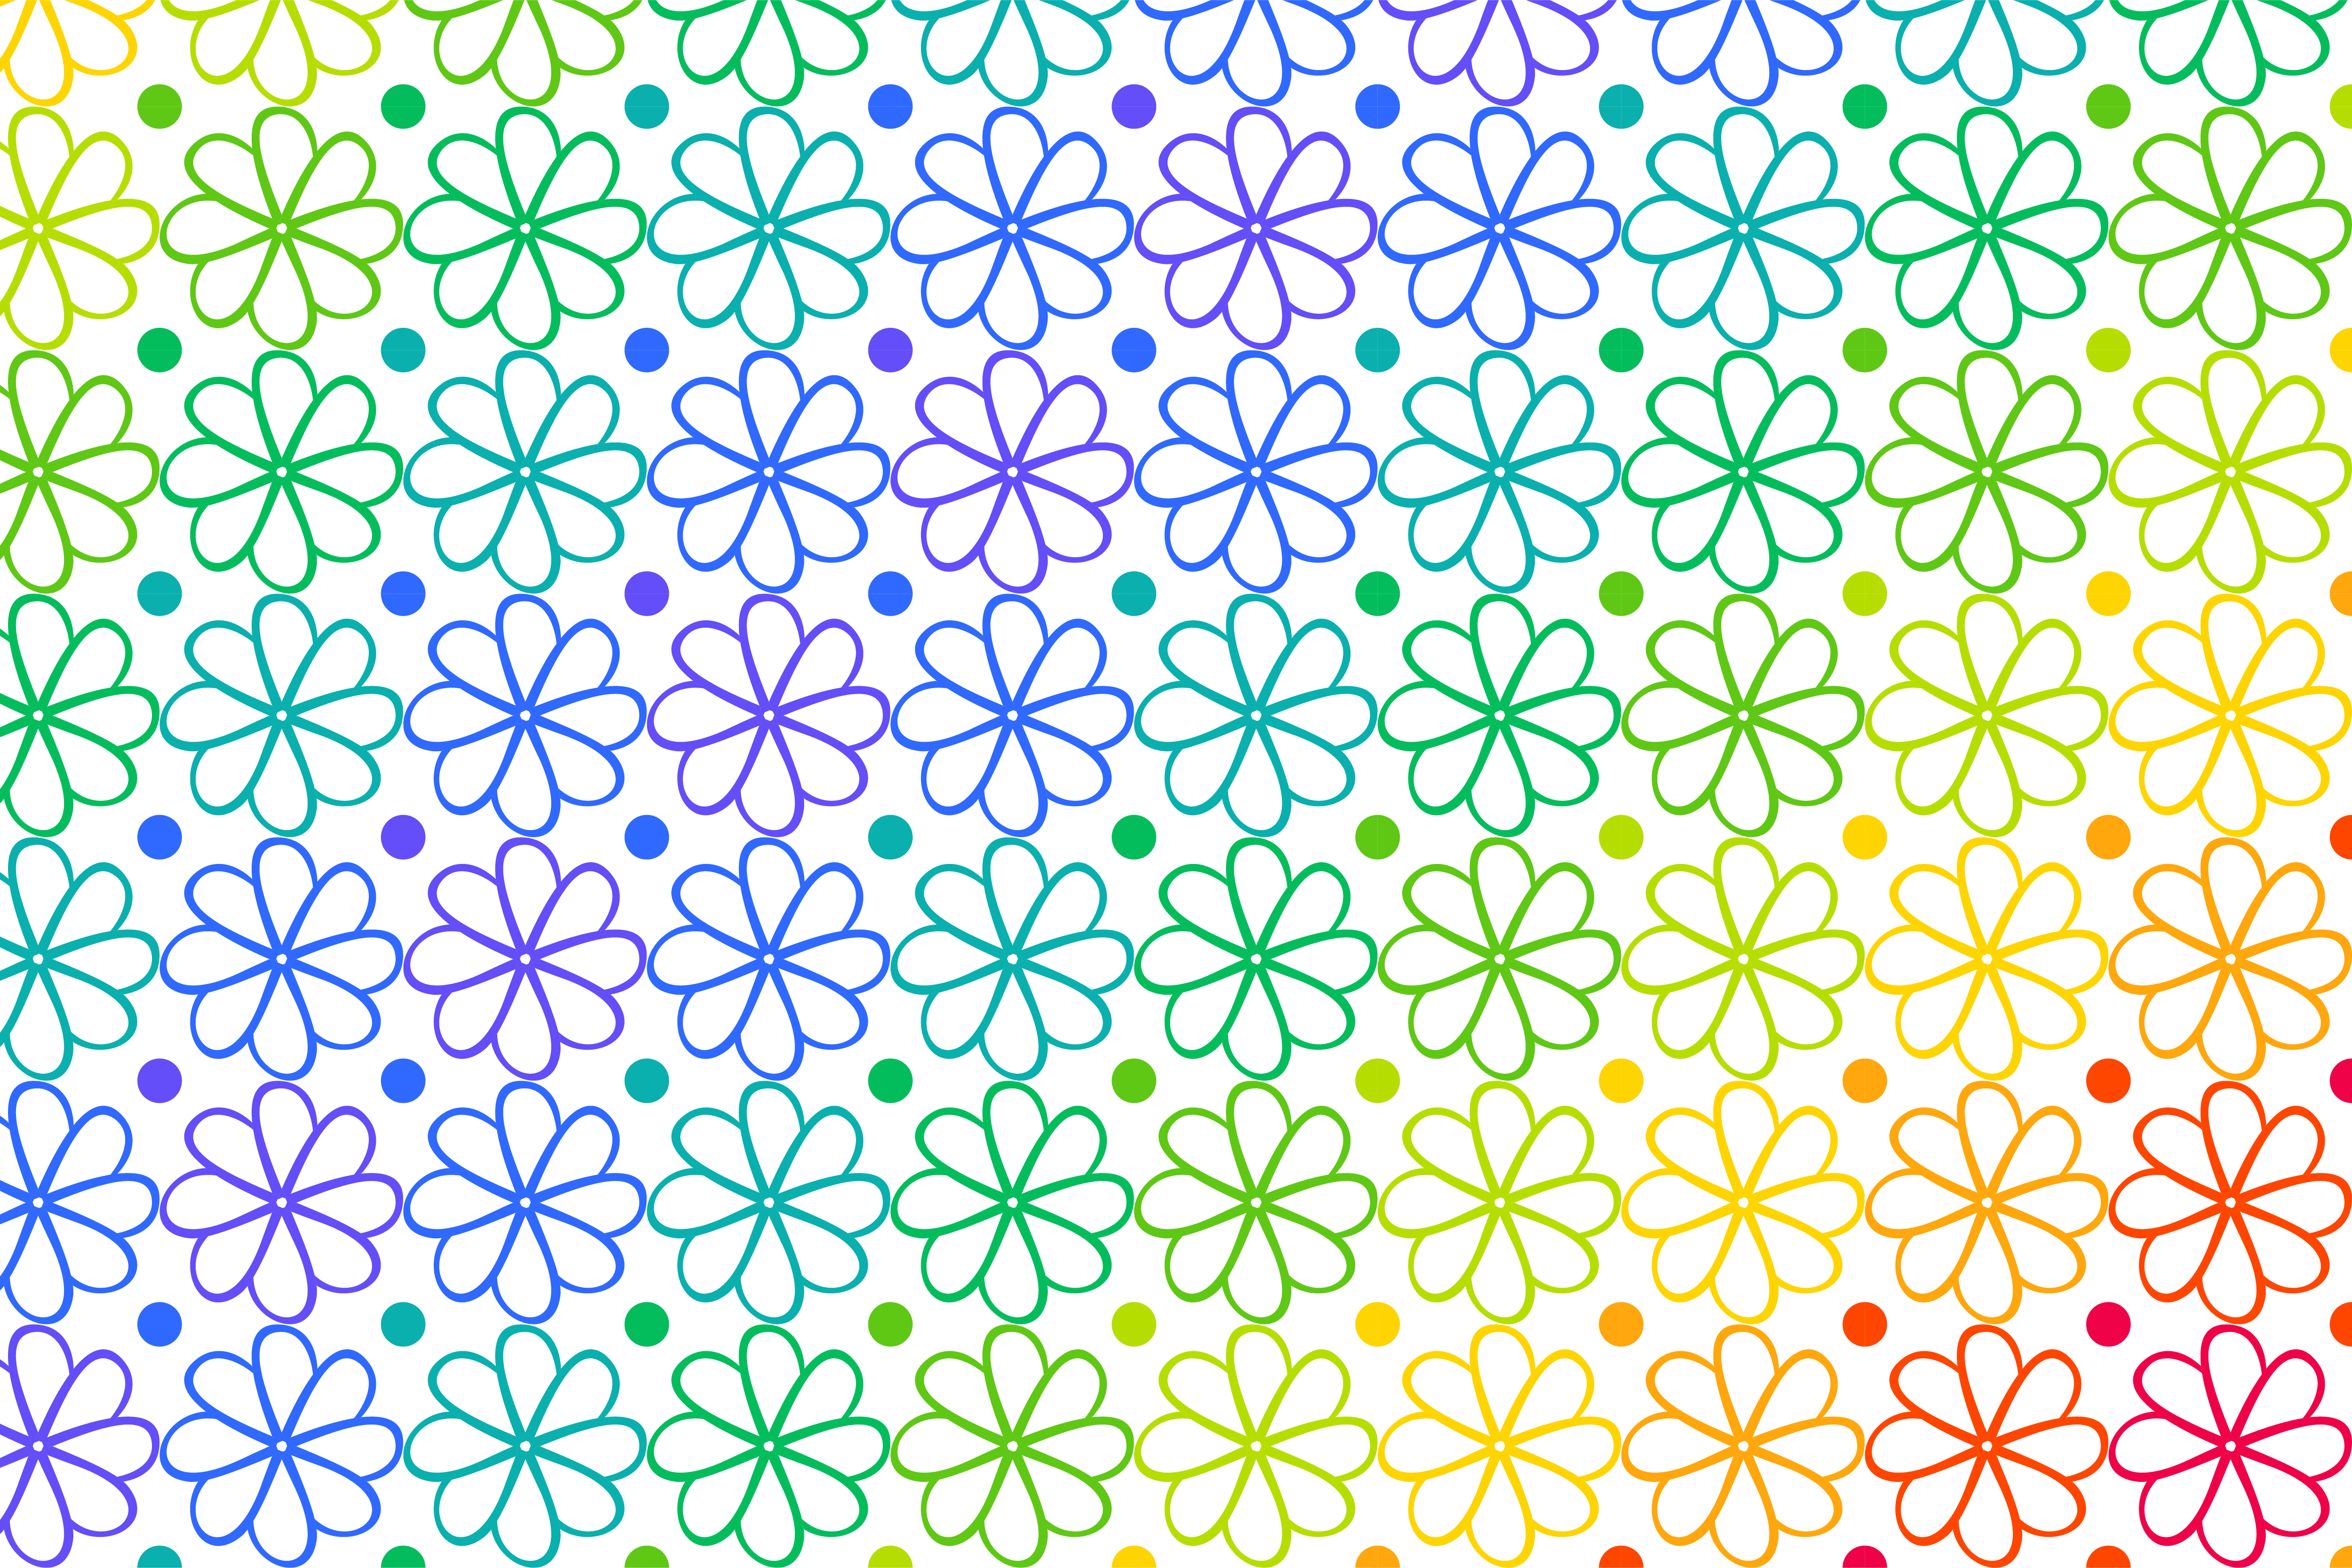 Download Free Rainbow Flower Pattern Graphic By Noory Shopper Creative Fabrica for Cricut Explore, Silhouette and other cutting machines.